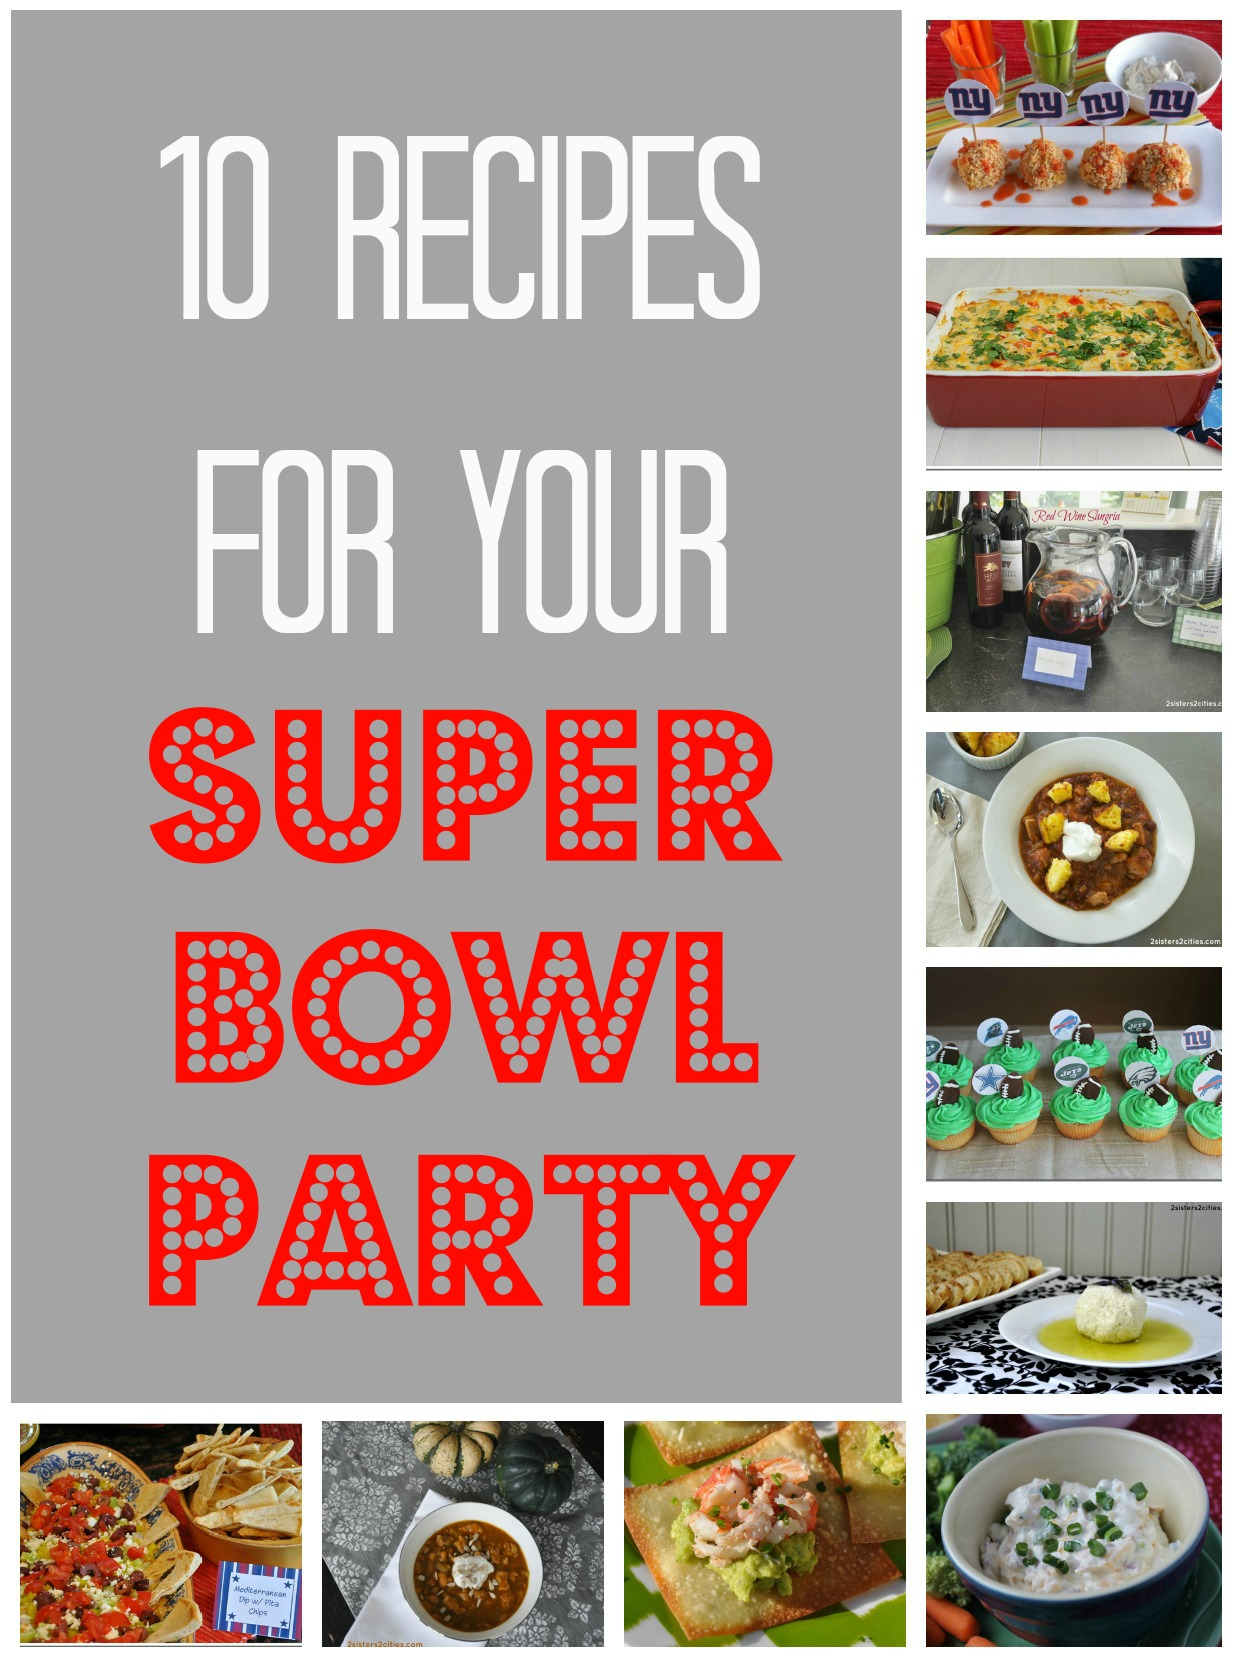 10 Super Bowl recipes {from 2 Sisters 2 Cities}